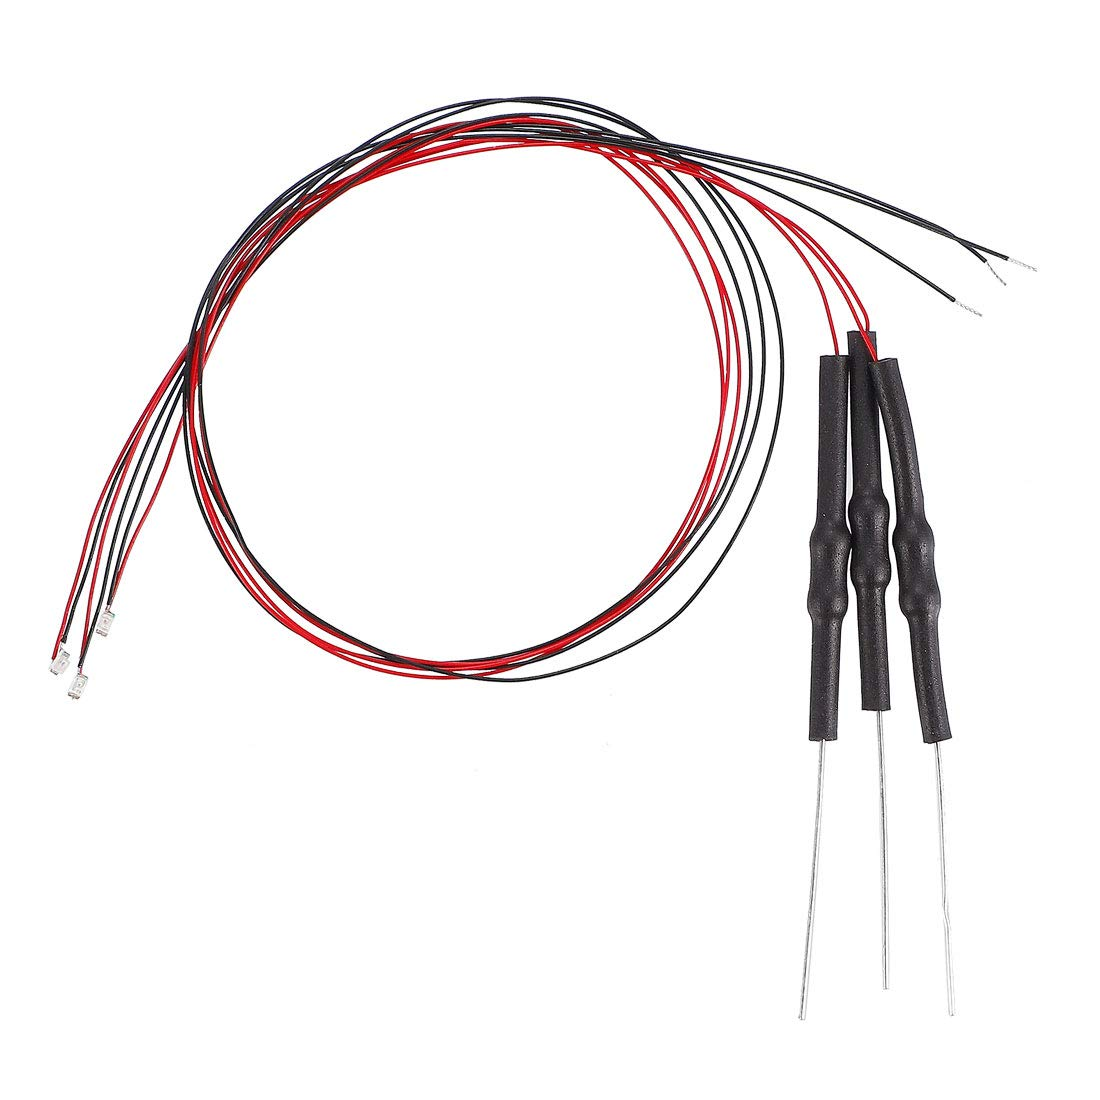 Dc 6-18v Micro Wired Soldered Mini LED Lights with Resistor uxcell 3pcs Prewired 0402 Red Smd LED Light Emitting Diode